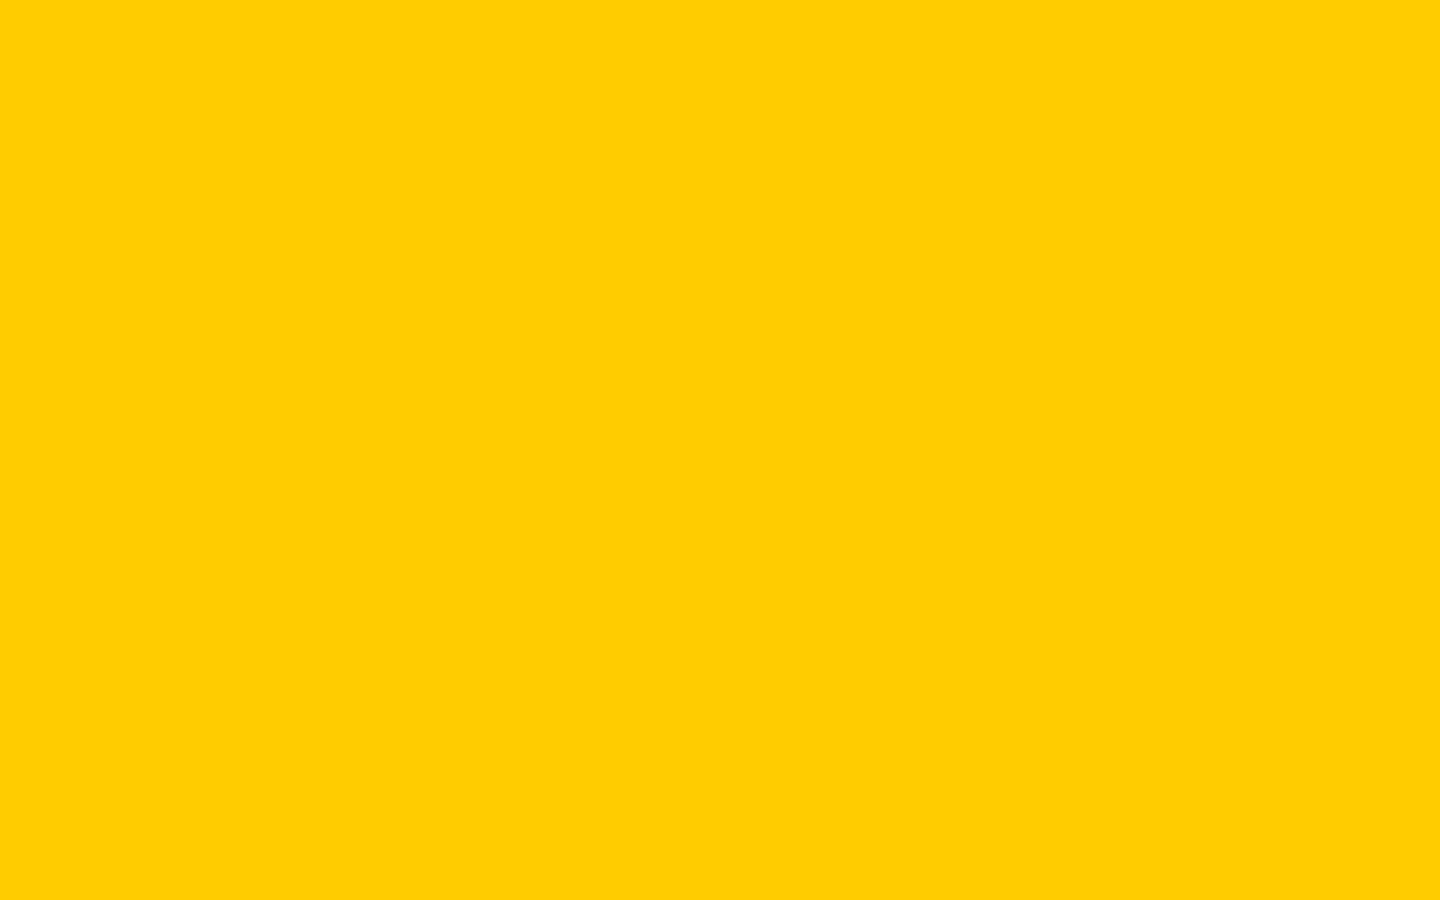 1440x900 Tangerine Yellow Solid Color Background